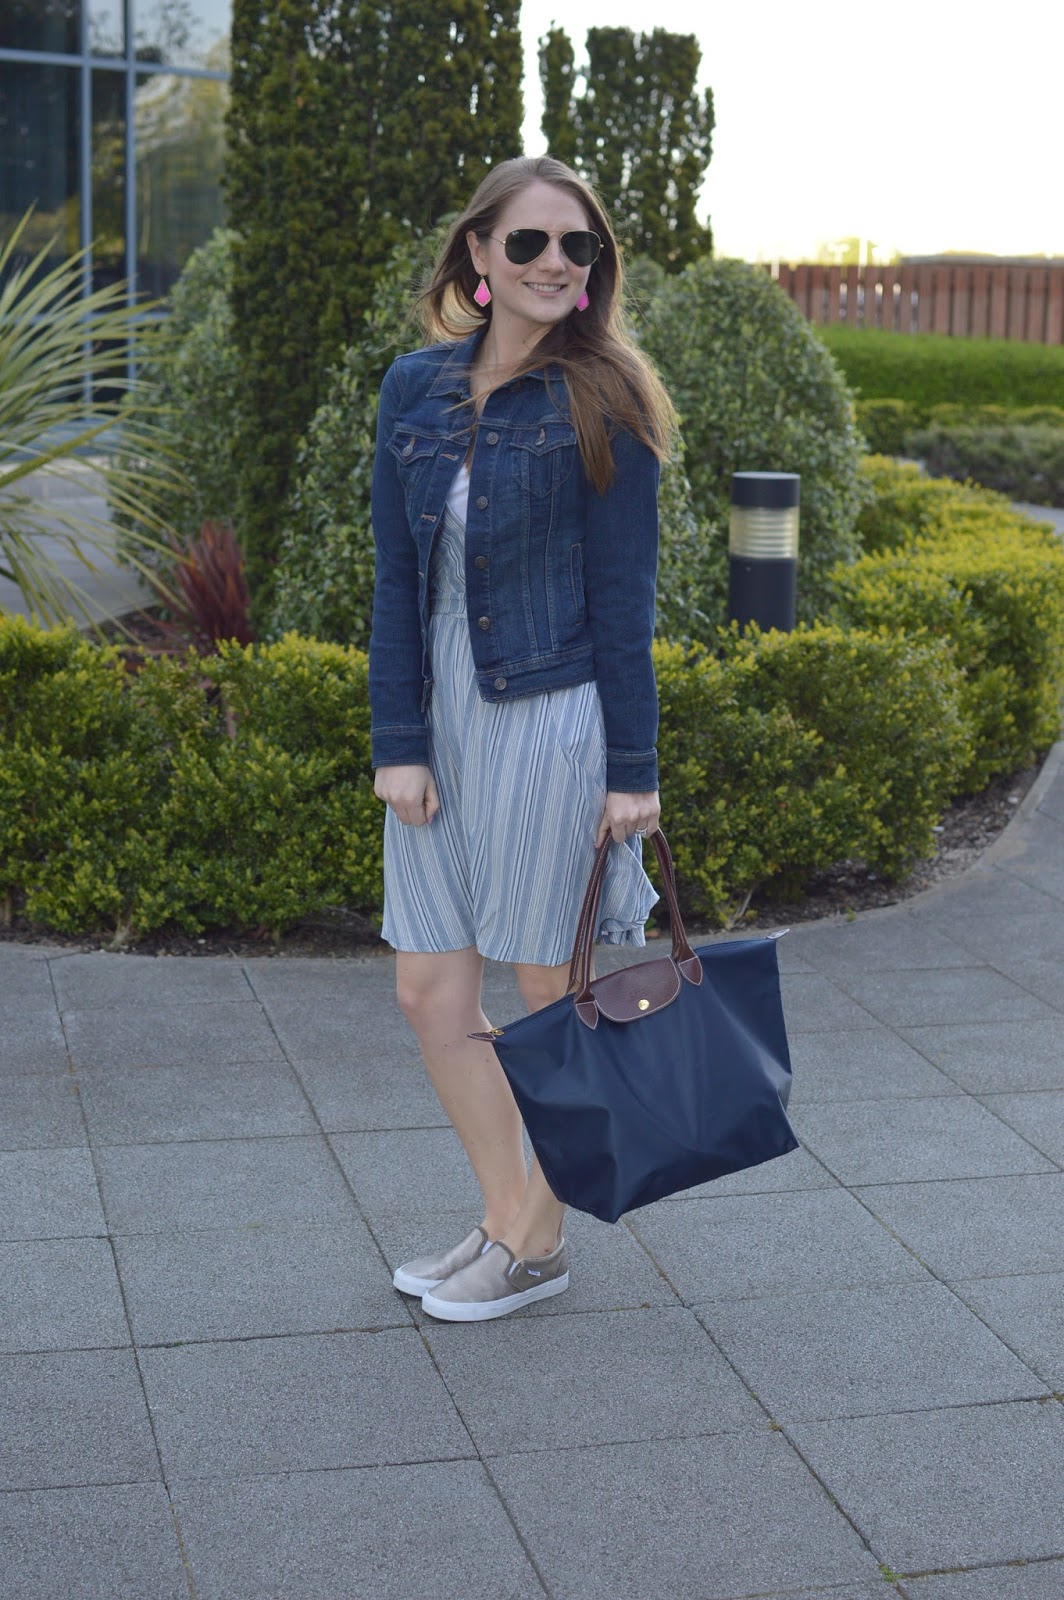 blue dress outfit ideas | what to wear with a denim jacket | spring outfit ideas | good travel outfit ideas | pop of pink in the earrings | a memory of us blog|